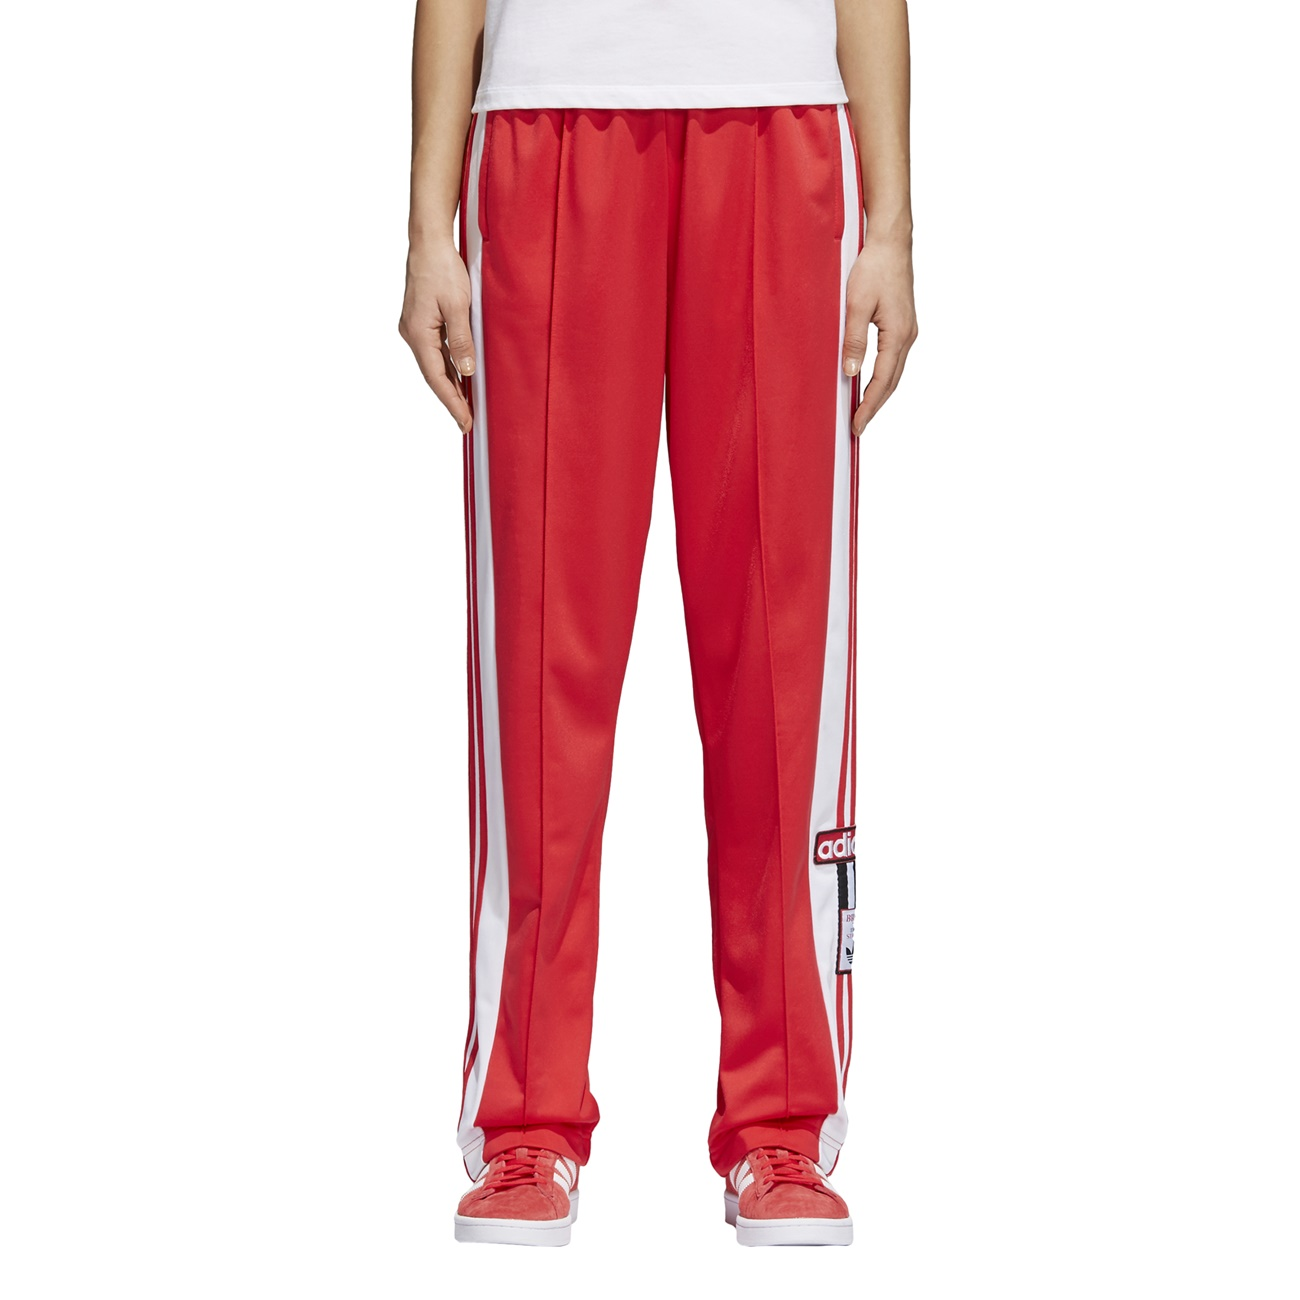 Adidas Originals Adibreak Pant W - manelsanchez.fr 1083cd607e6